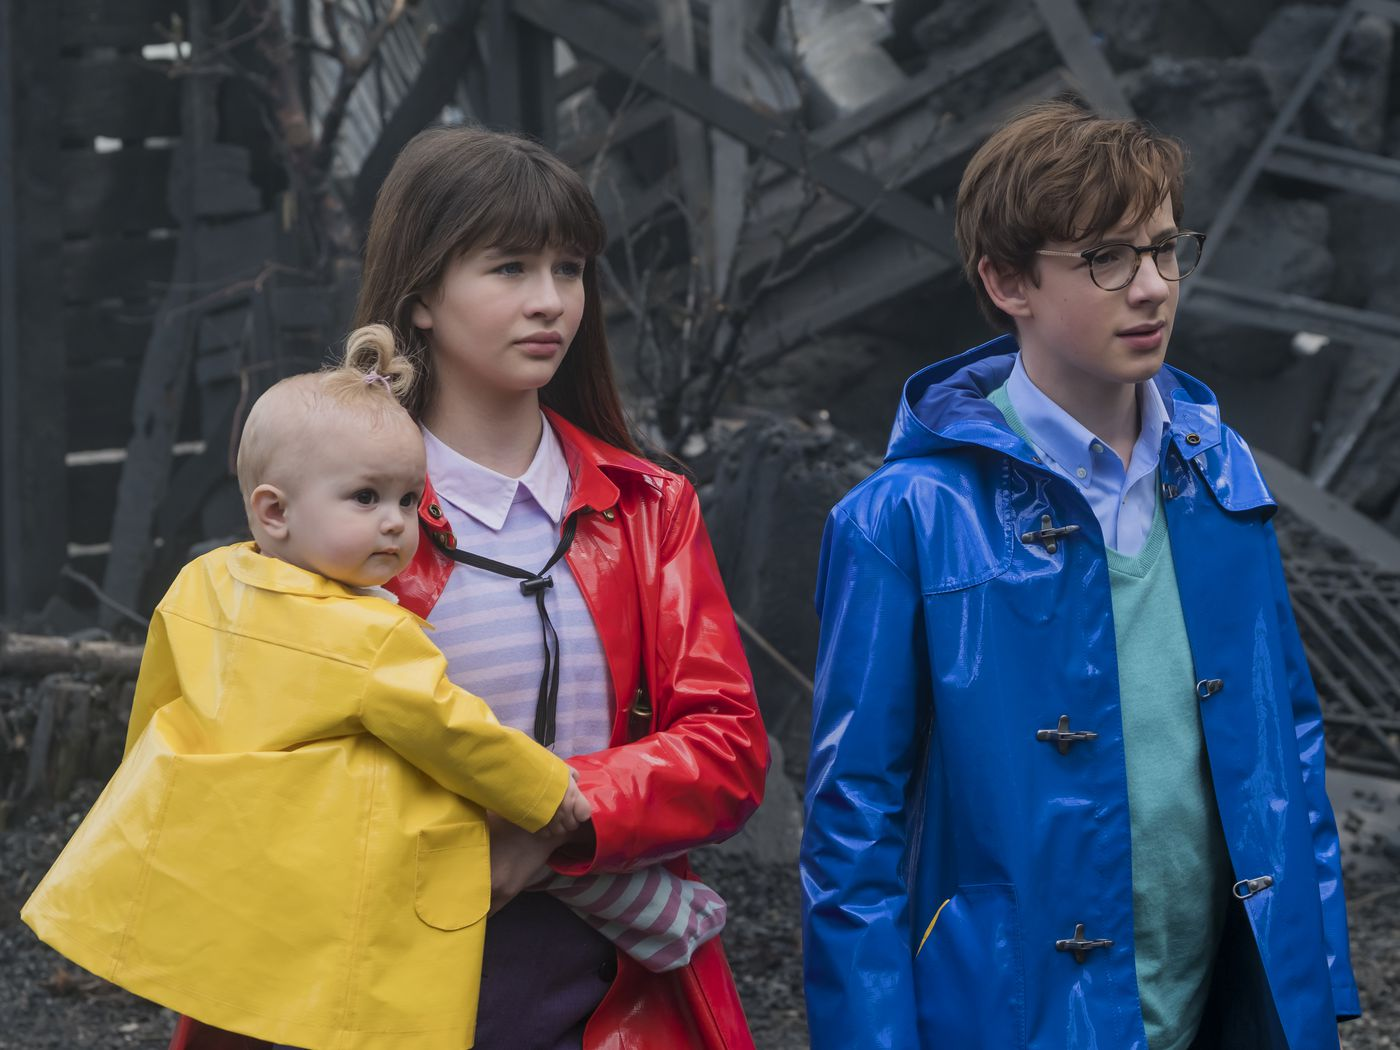 Lemony Snicket S A Series Of Unfortunate Events The 6 Main Changes From Book To Netflix Vox